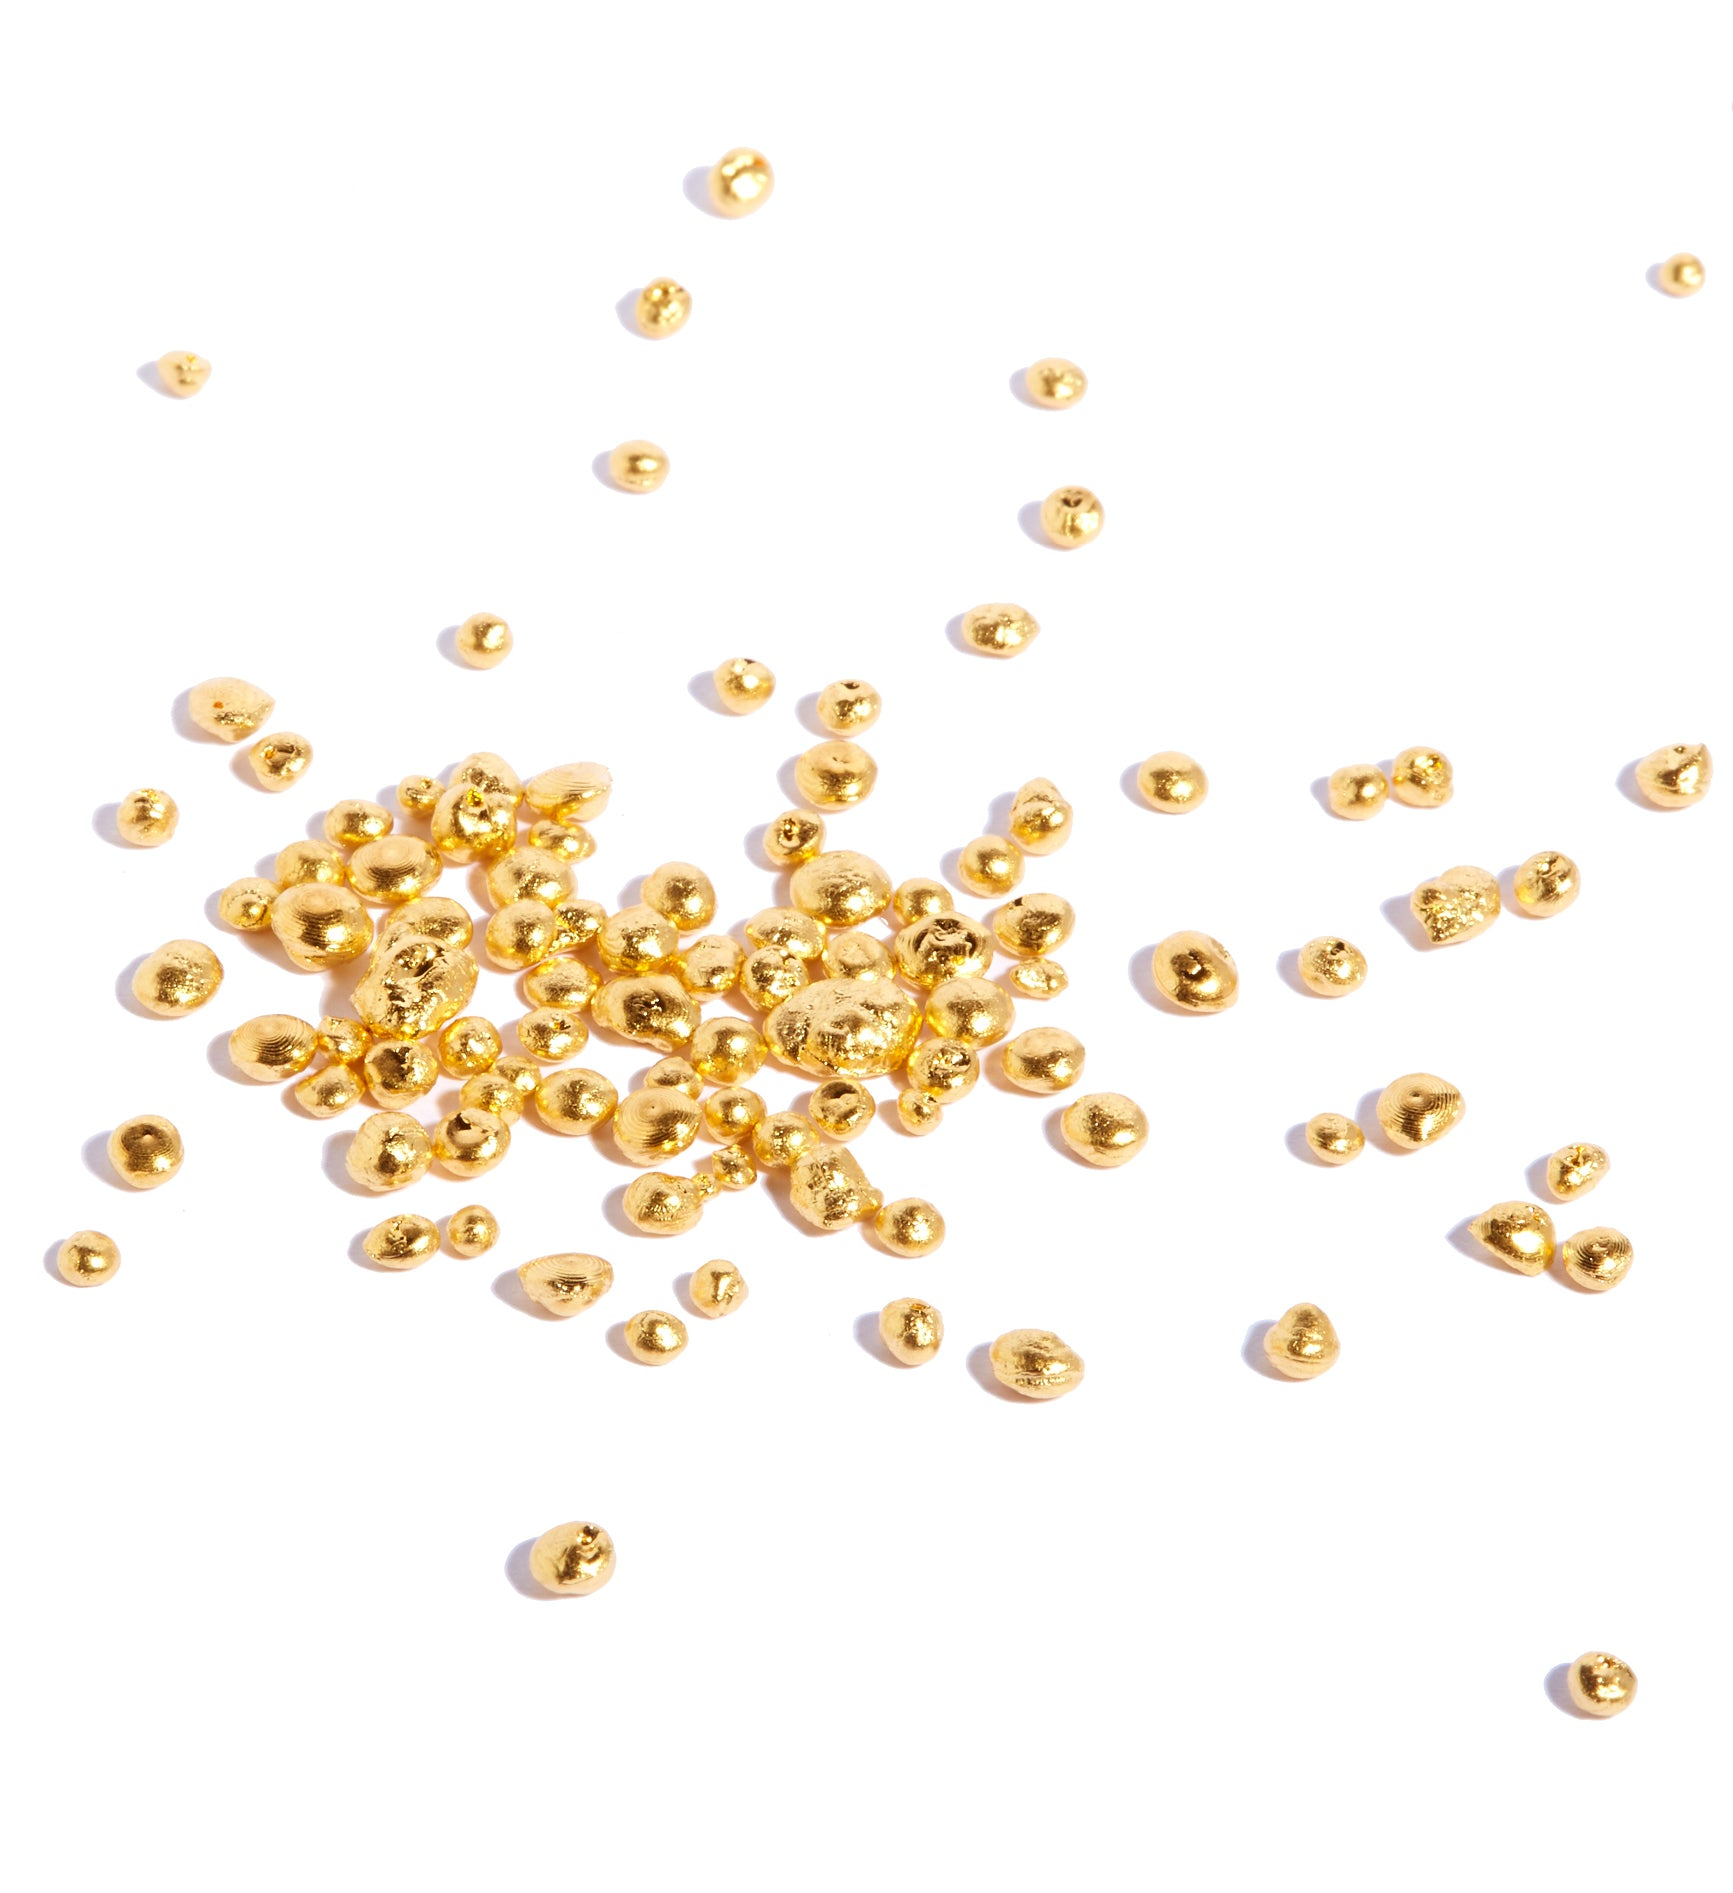 https://cdn.shopify.com/s/files/1/0571/9261/t/15/assets/gold%20granules-1509673206628.jpg?4725975501273038212